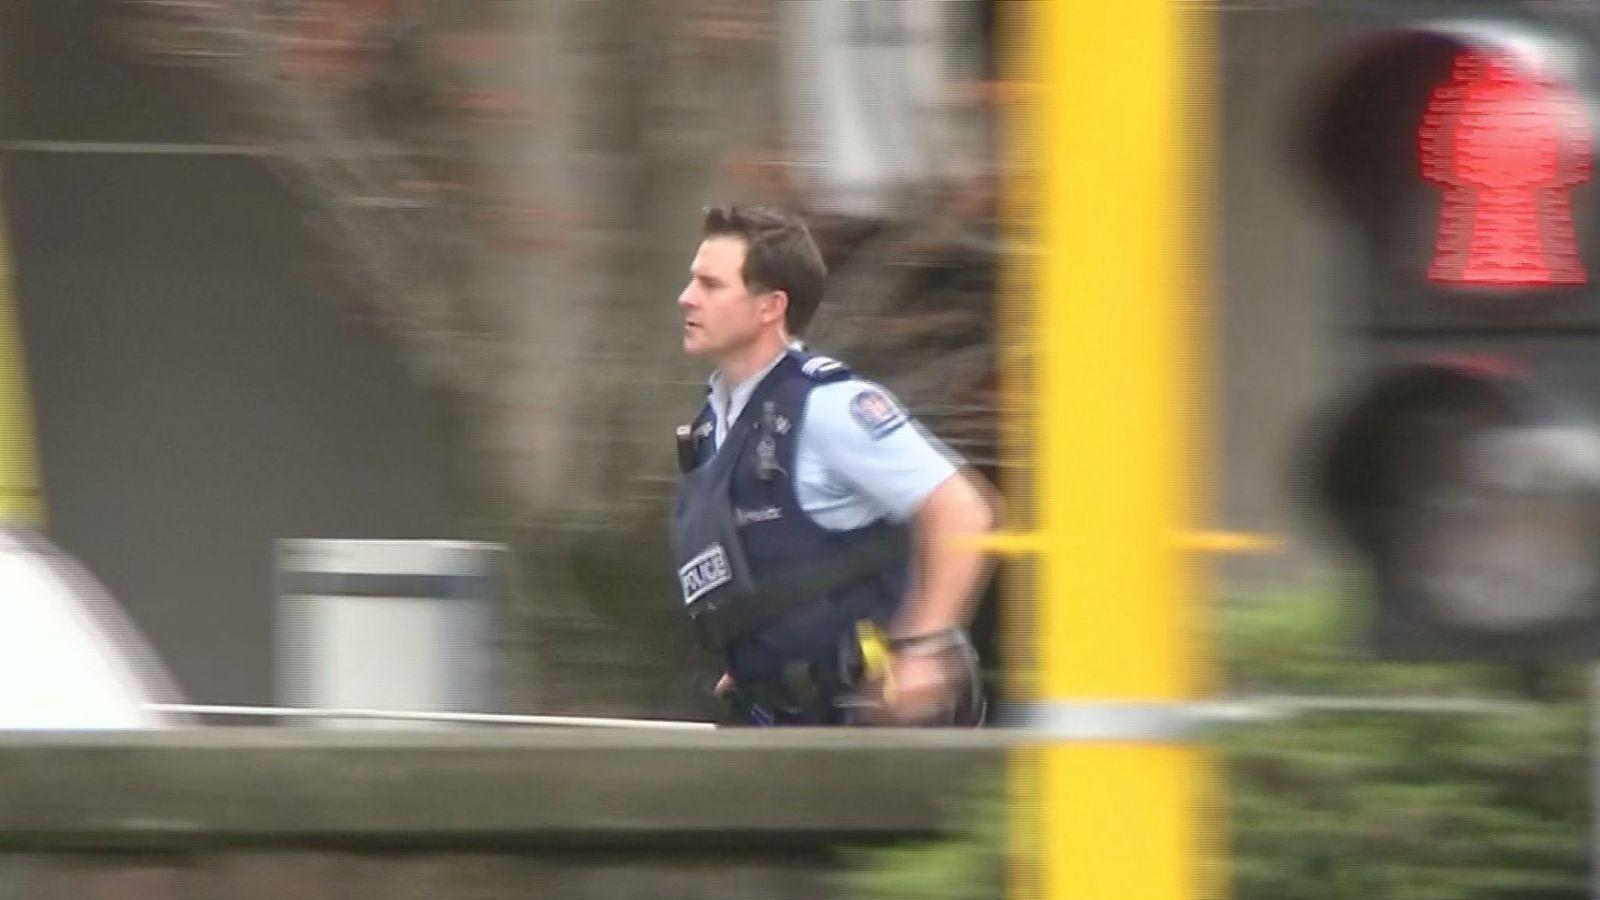 A police officer attends the scene of a mass shooting in Christchurch